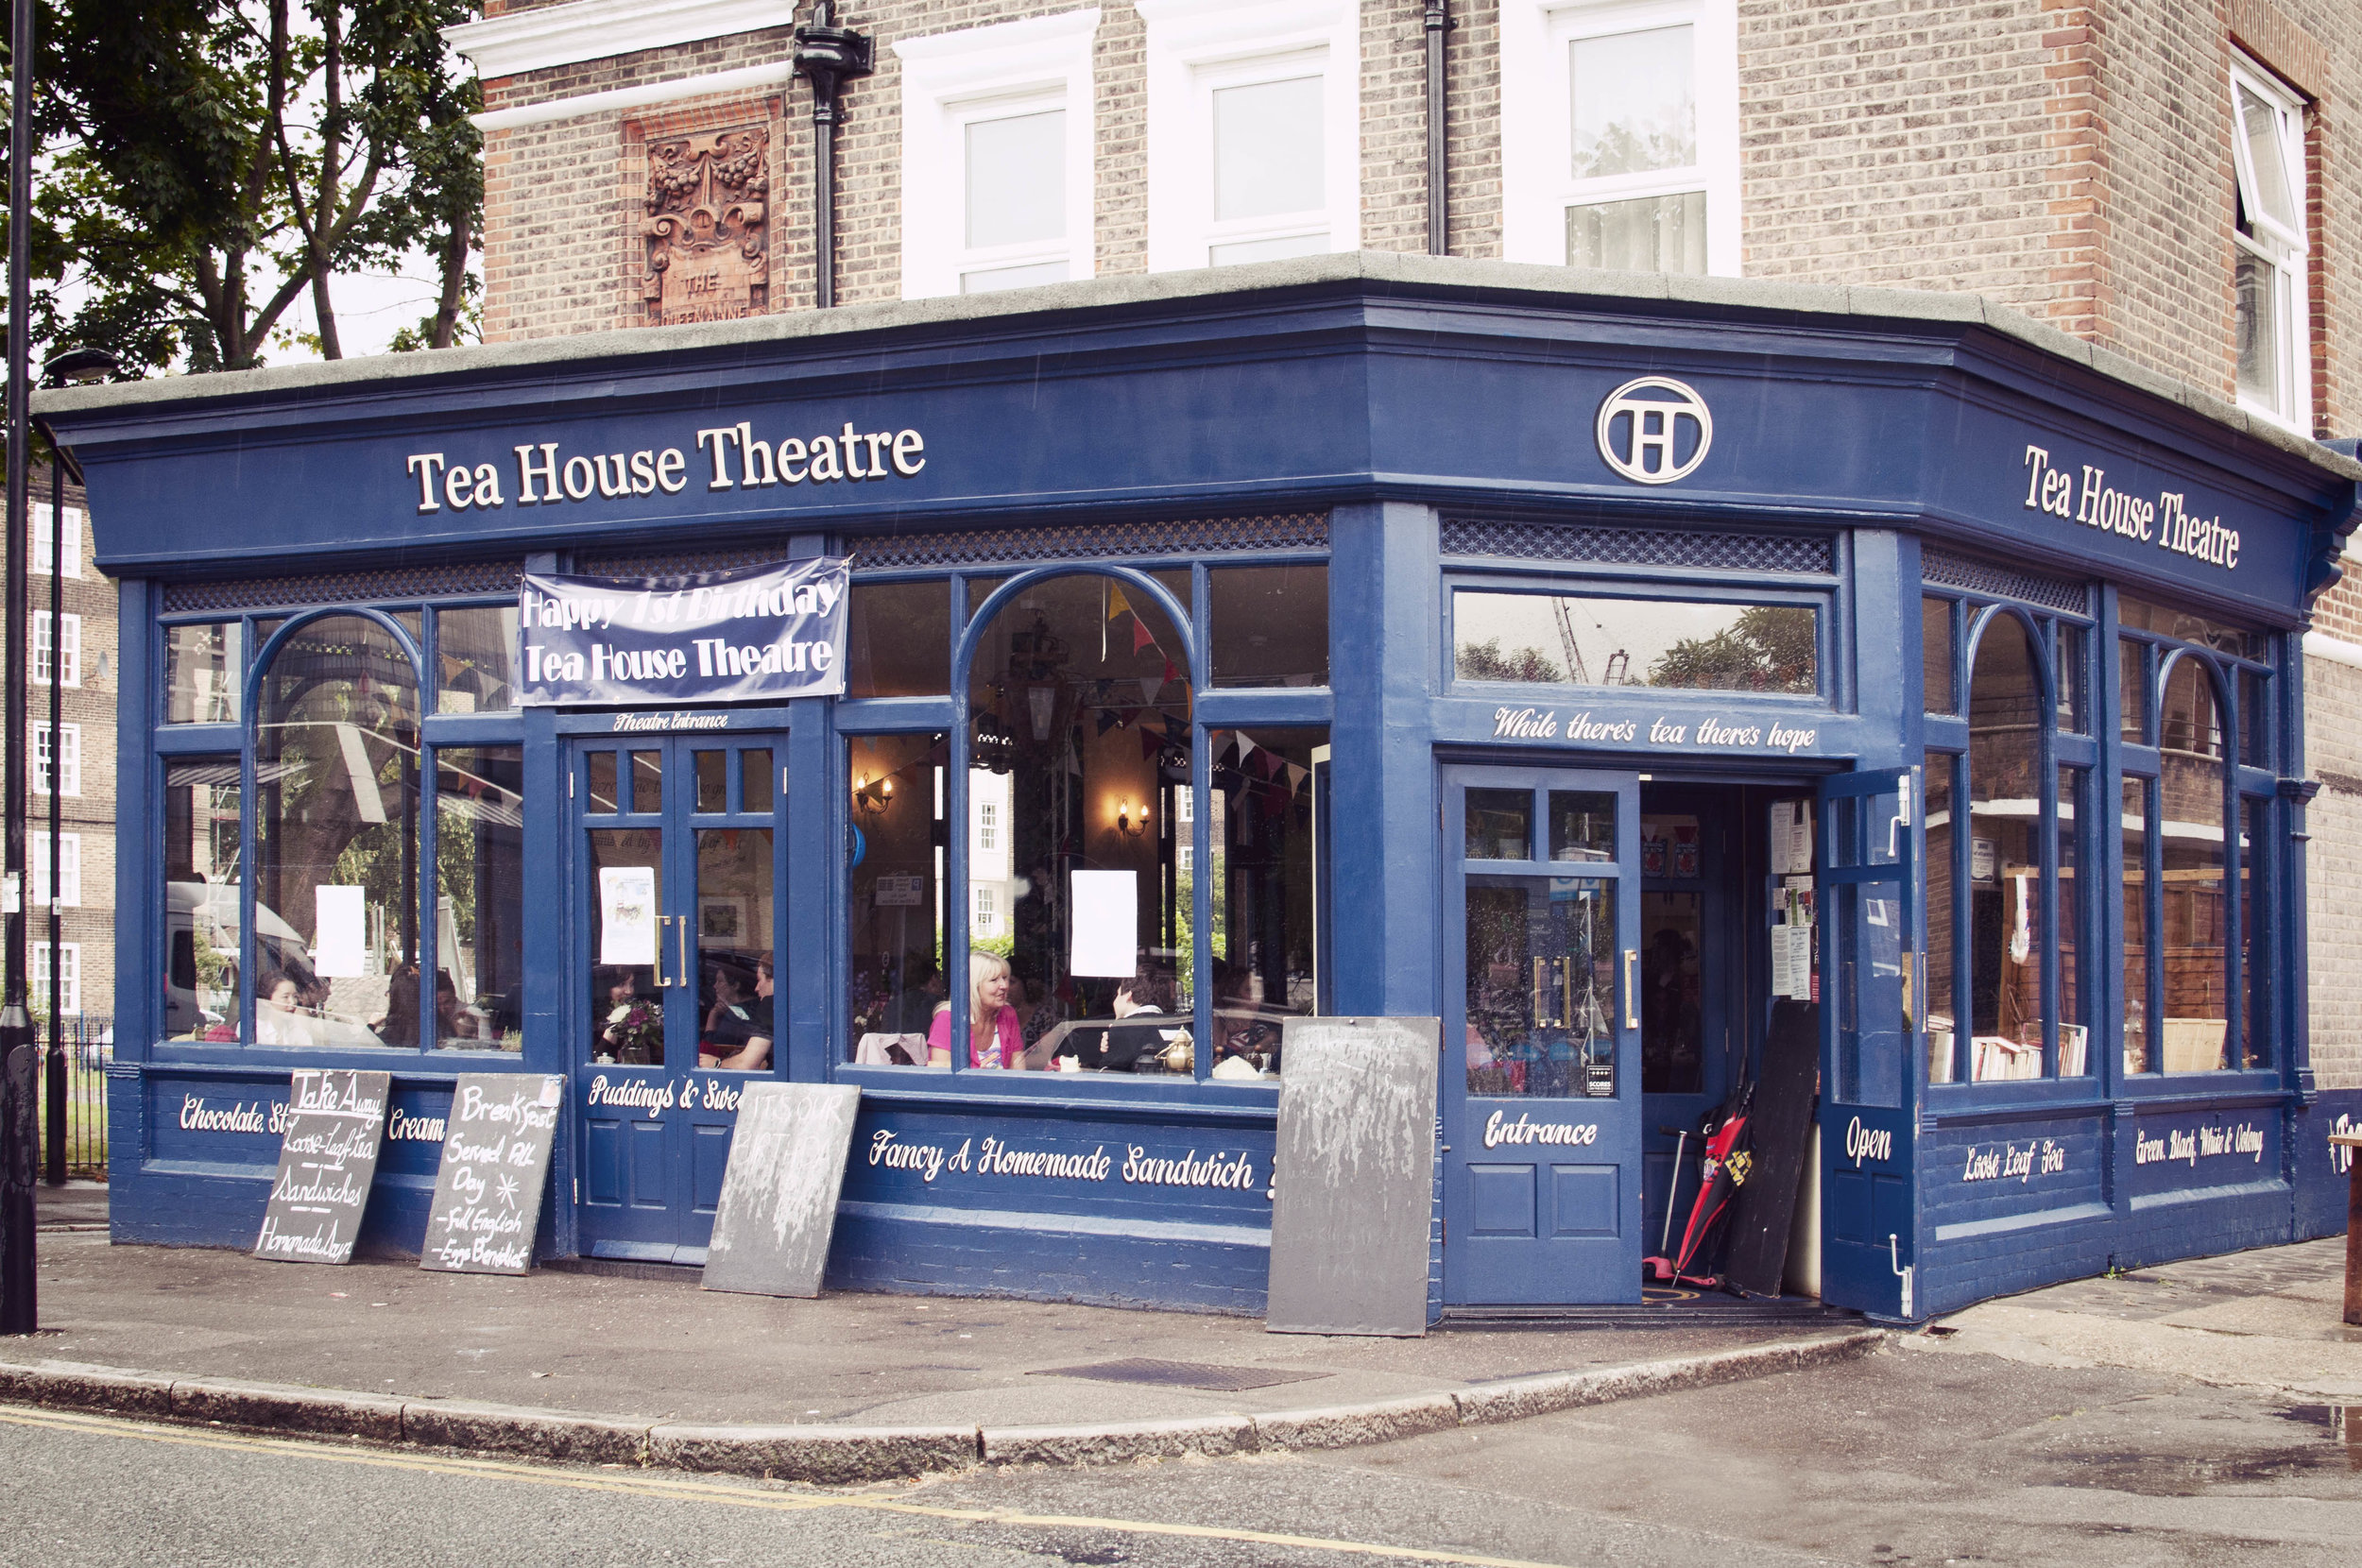 Tea House Theatre - 01